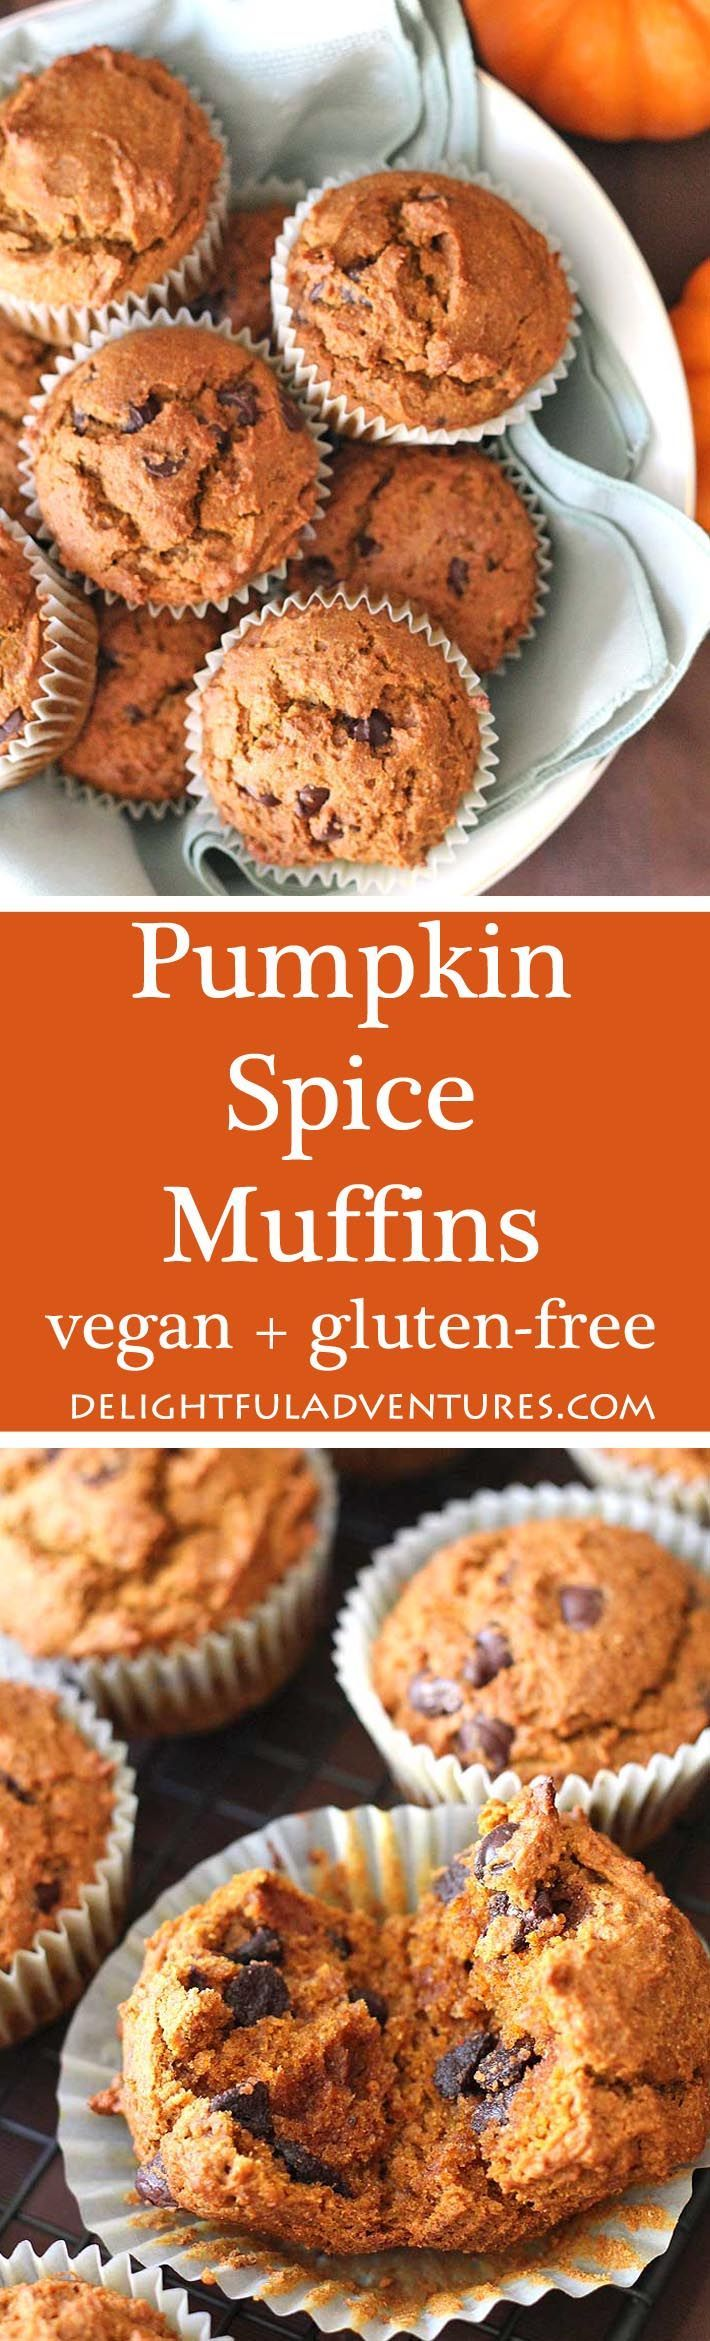 Vegan gluten free pumpkin spice muffins that are so easy to make and so delicious, you'll want to make them year-round—not just during the fall. #vegan #veganglutenfree #pumpkinmuffins #veganpumpkinrecipe